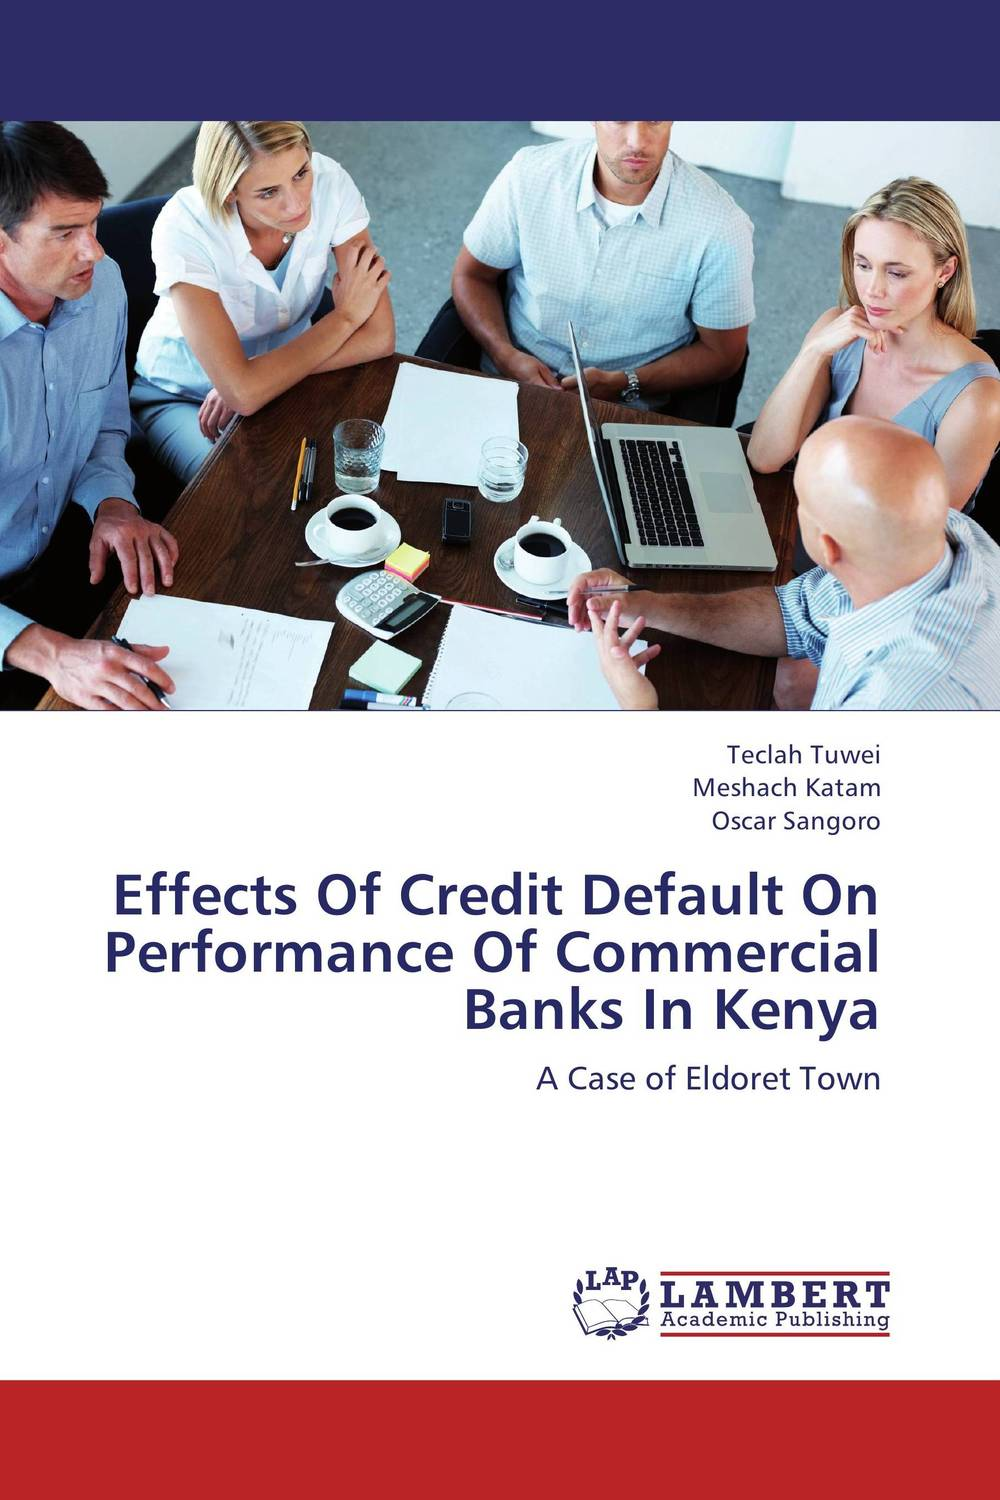 Effects Of Credit Default On Performance Of Commercial Banks In Kenya analysis on credit concentration risk and npa in banks portfolio